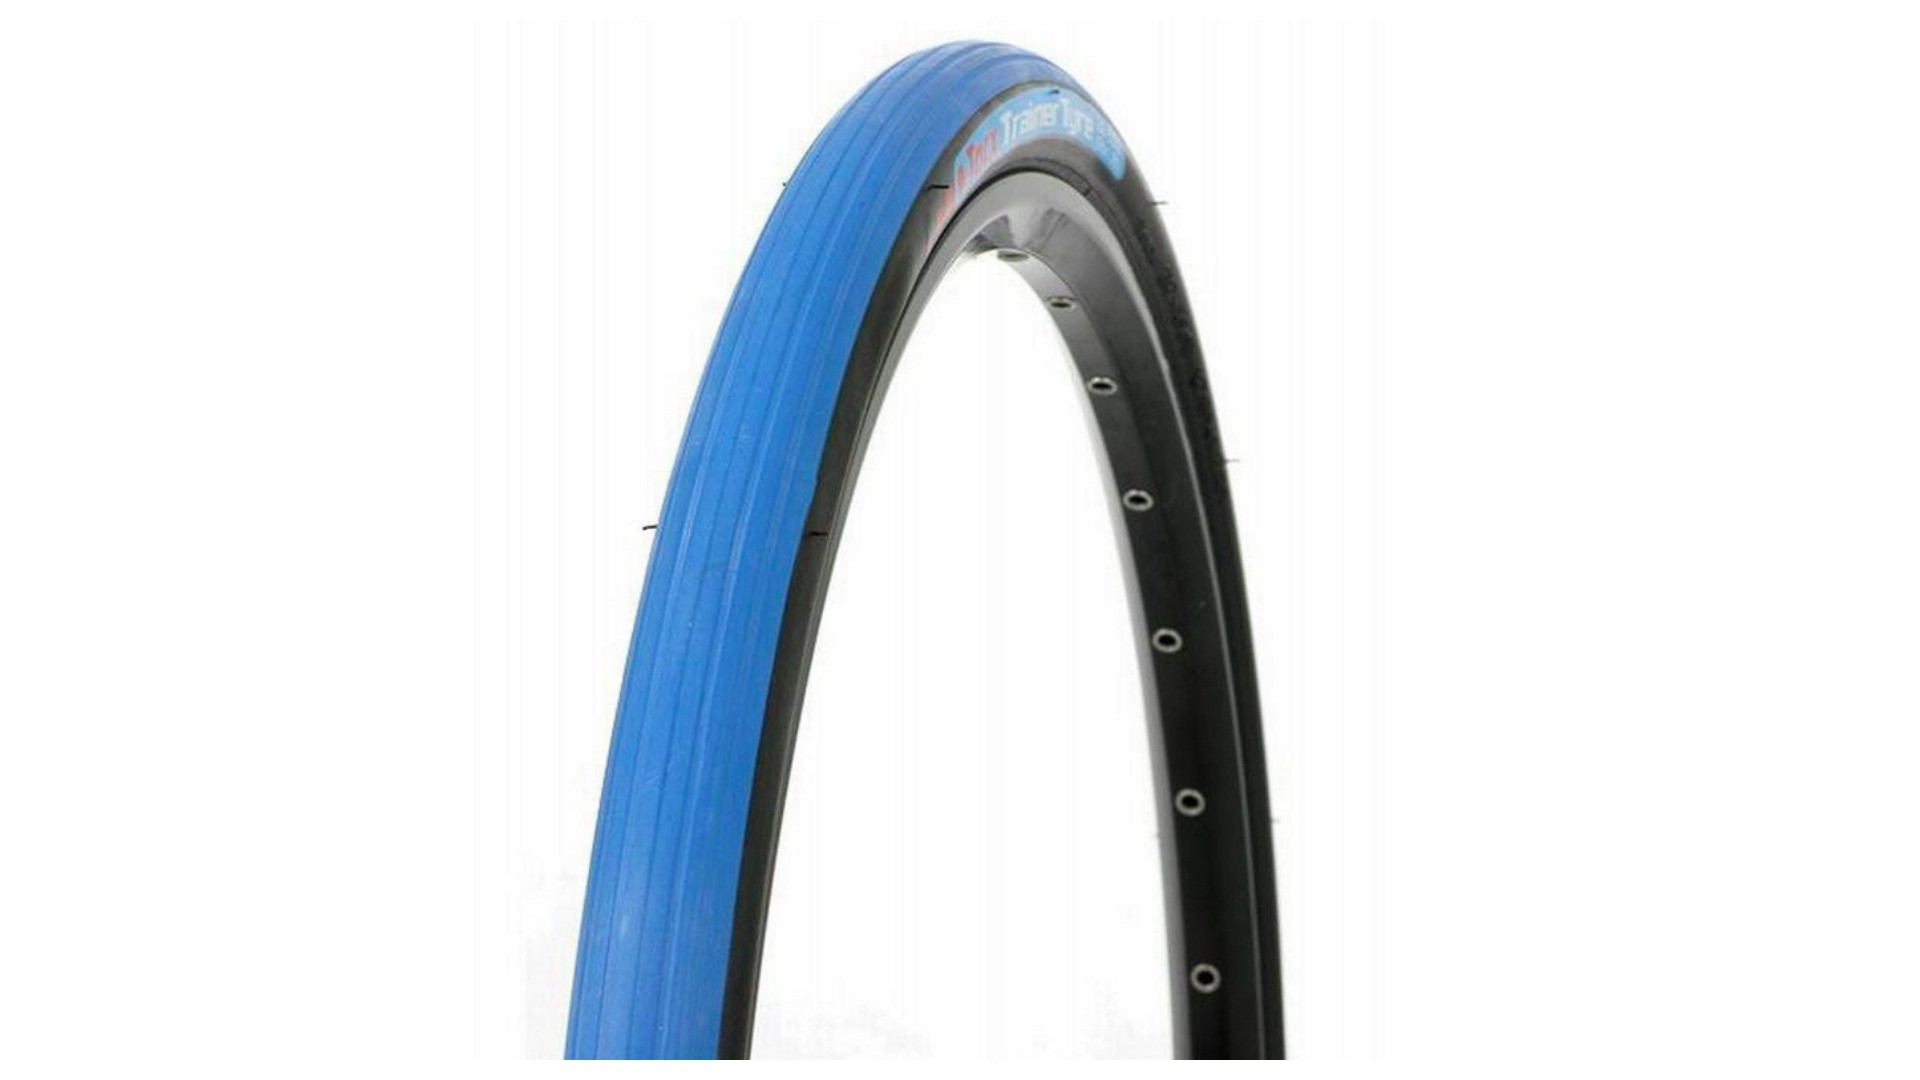 Indoor training without wearing down your precious road tyres